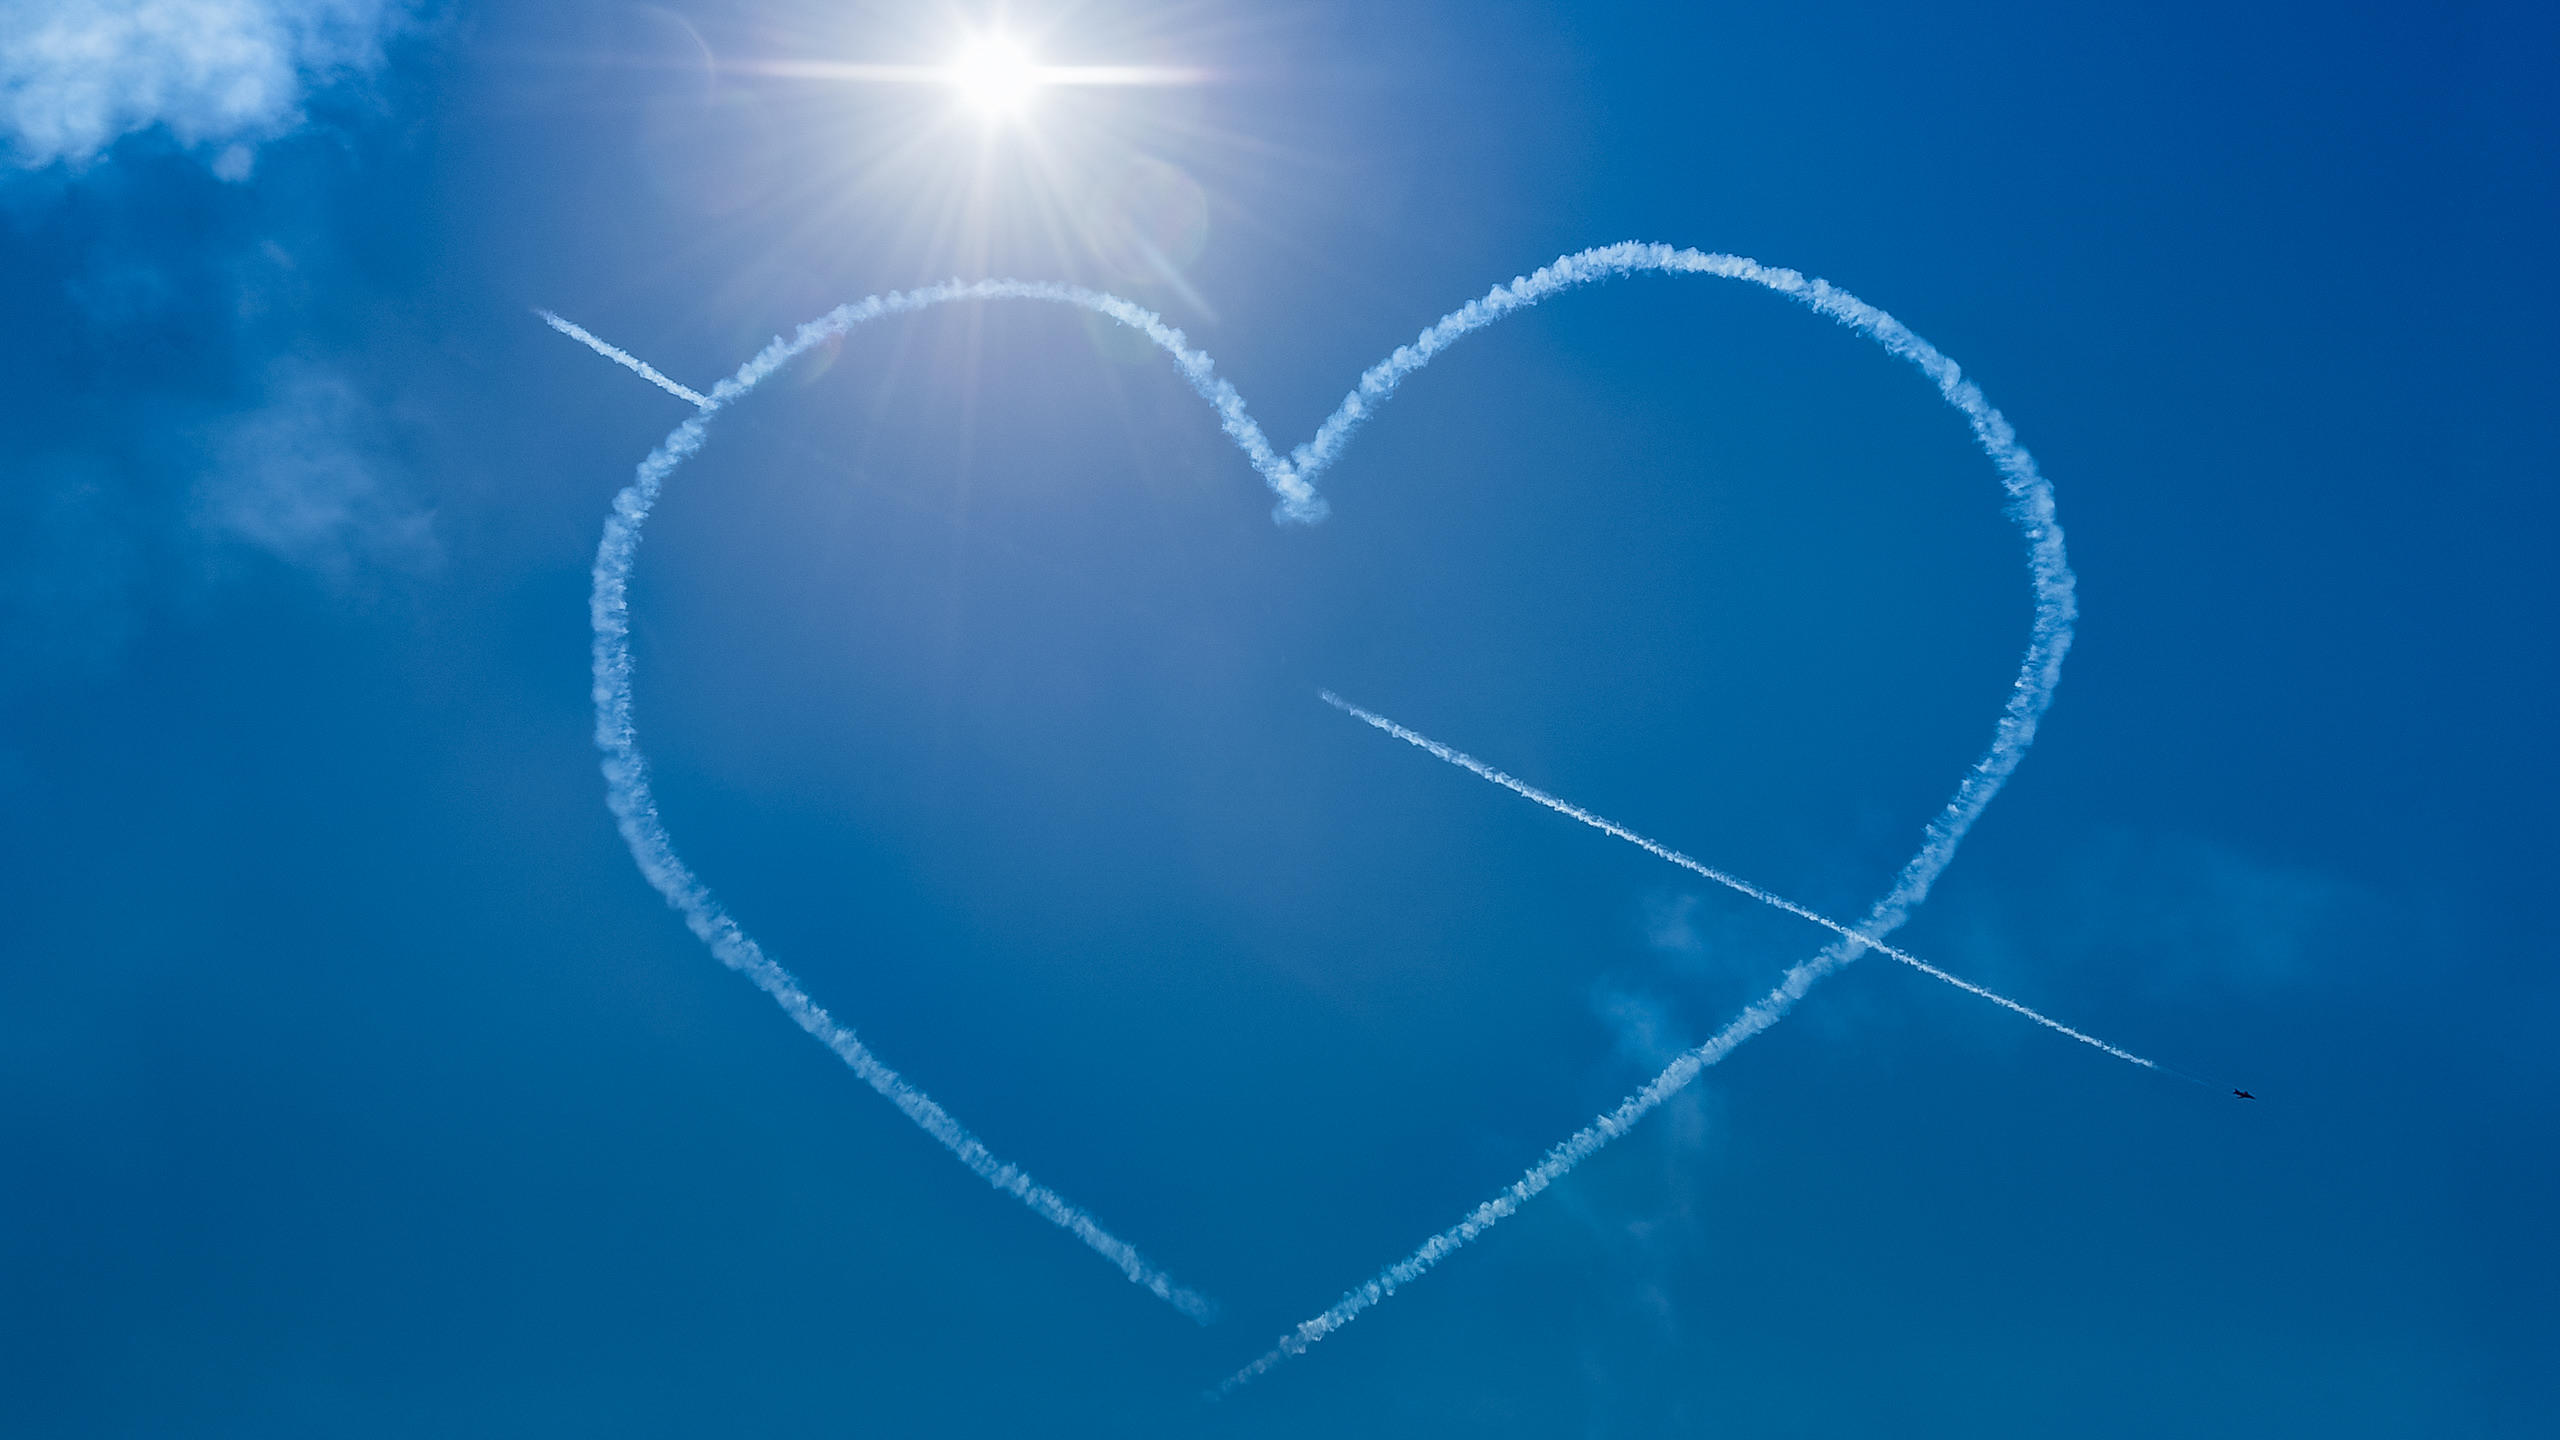 Red Arrows Create a Heart in the Sky